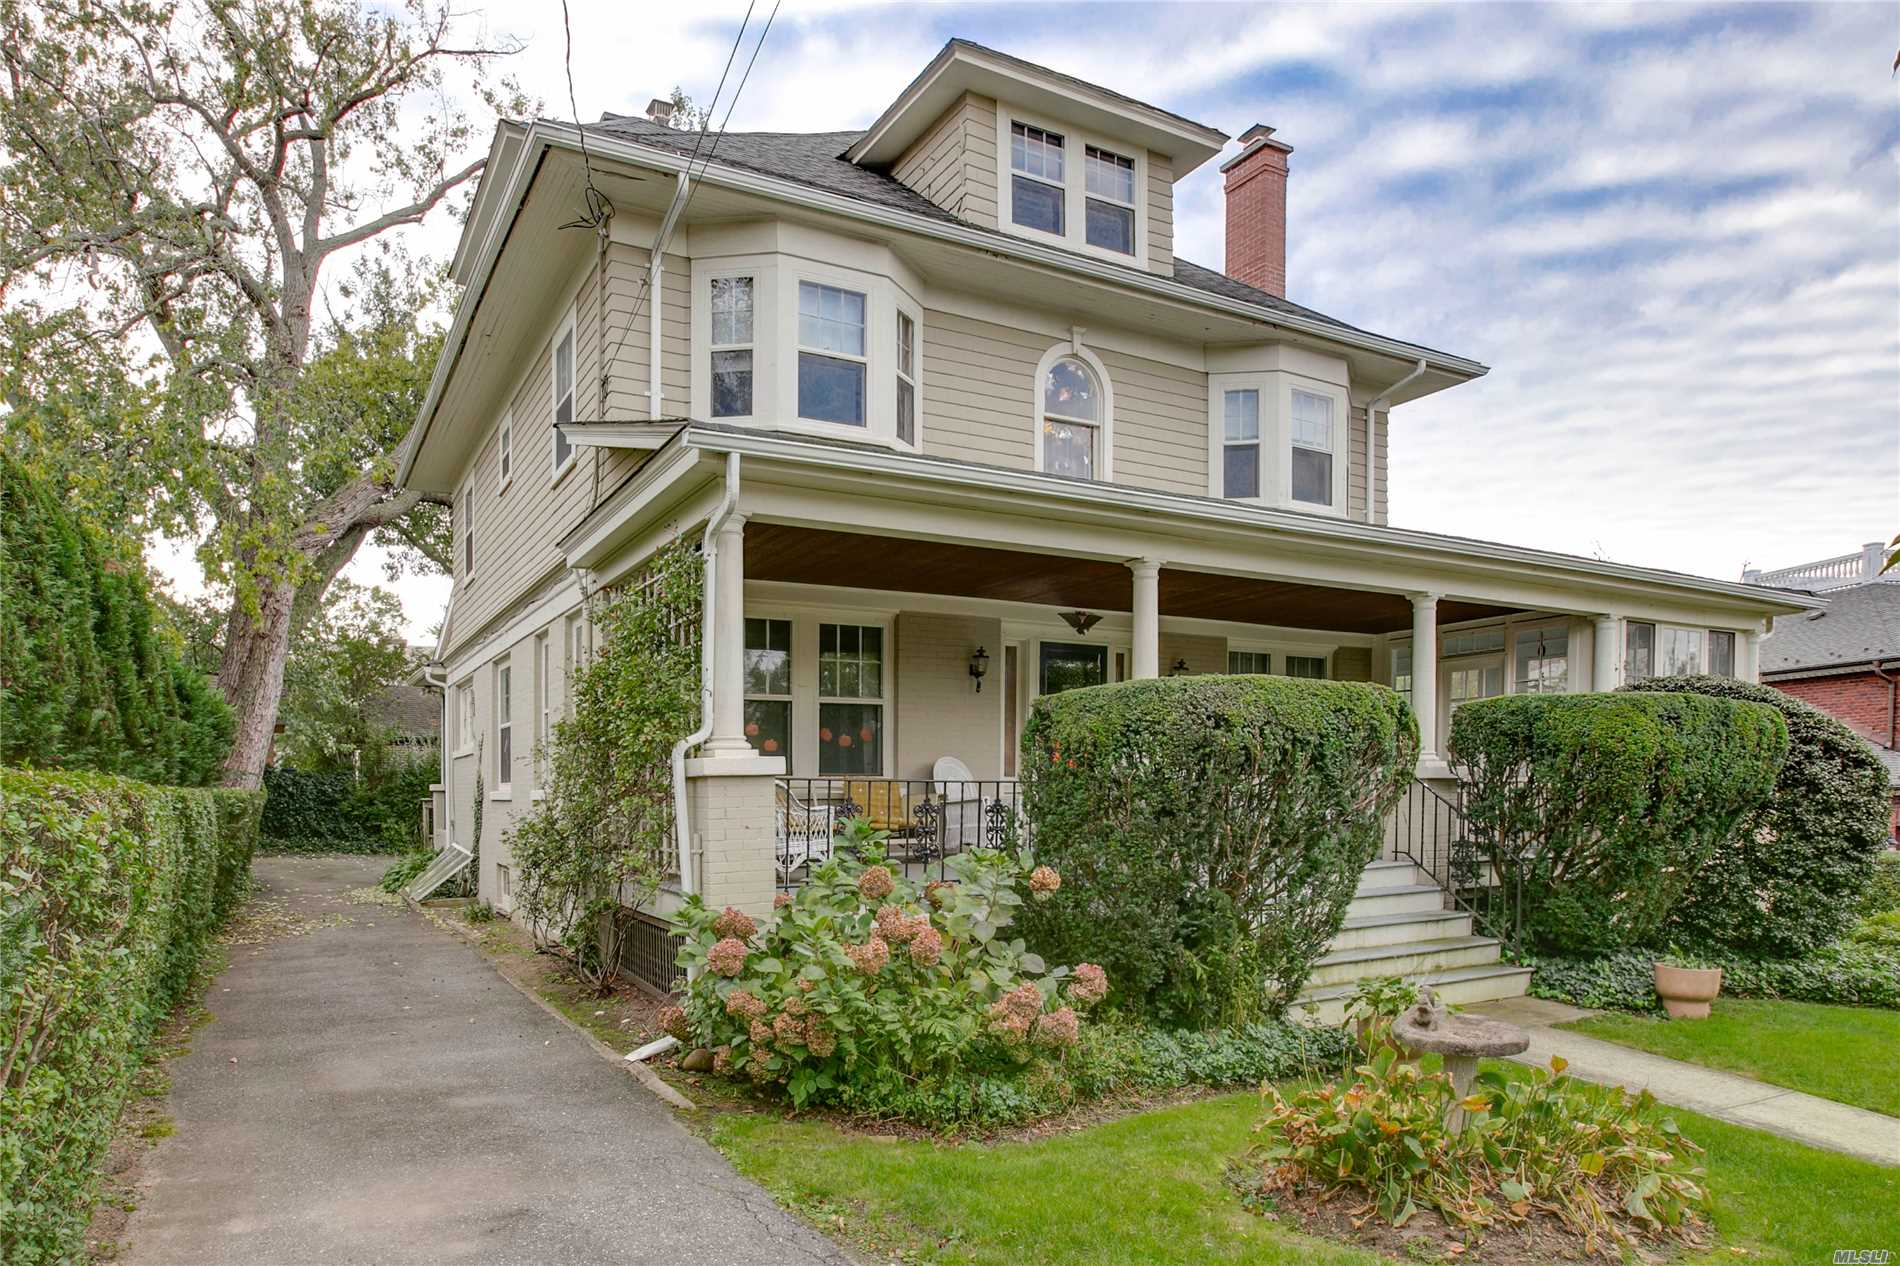 Renovate A Classic 1920 Douglaston Property In The Heart Of Douglas Manor, Just Steps From The Water. Sitting High, This 6 Bedroom Colonial Features High Ceilings And Large Rooms, With Gorgeous Waterviews. Come See Nyc's Best Kept Secret In Douglas Manor!